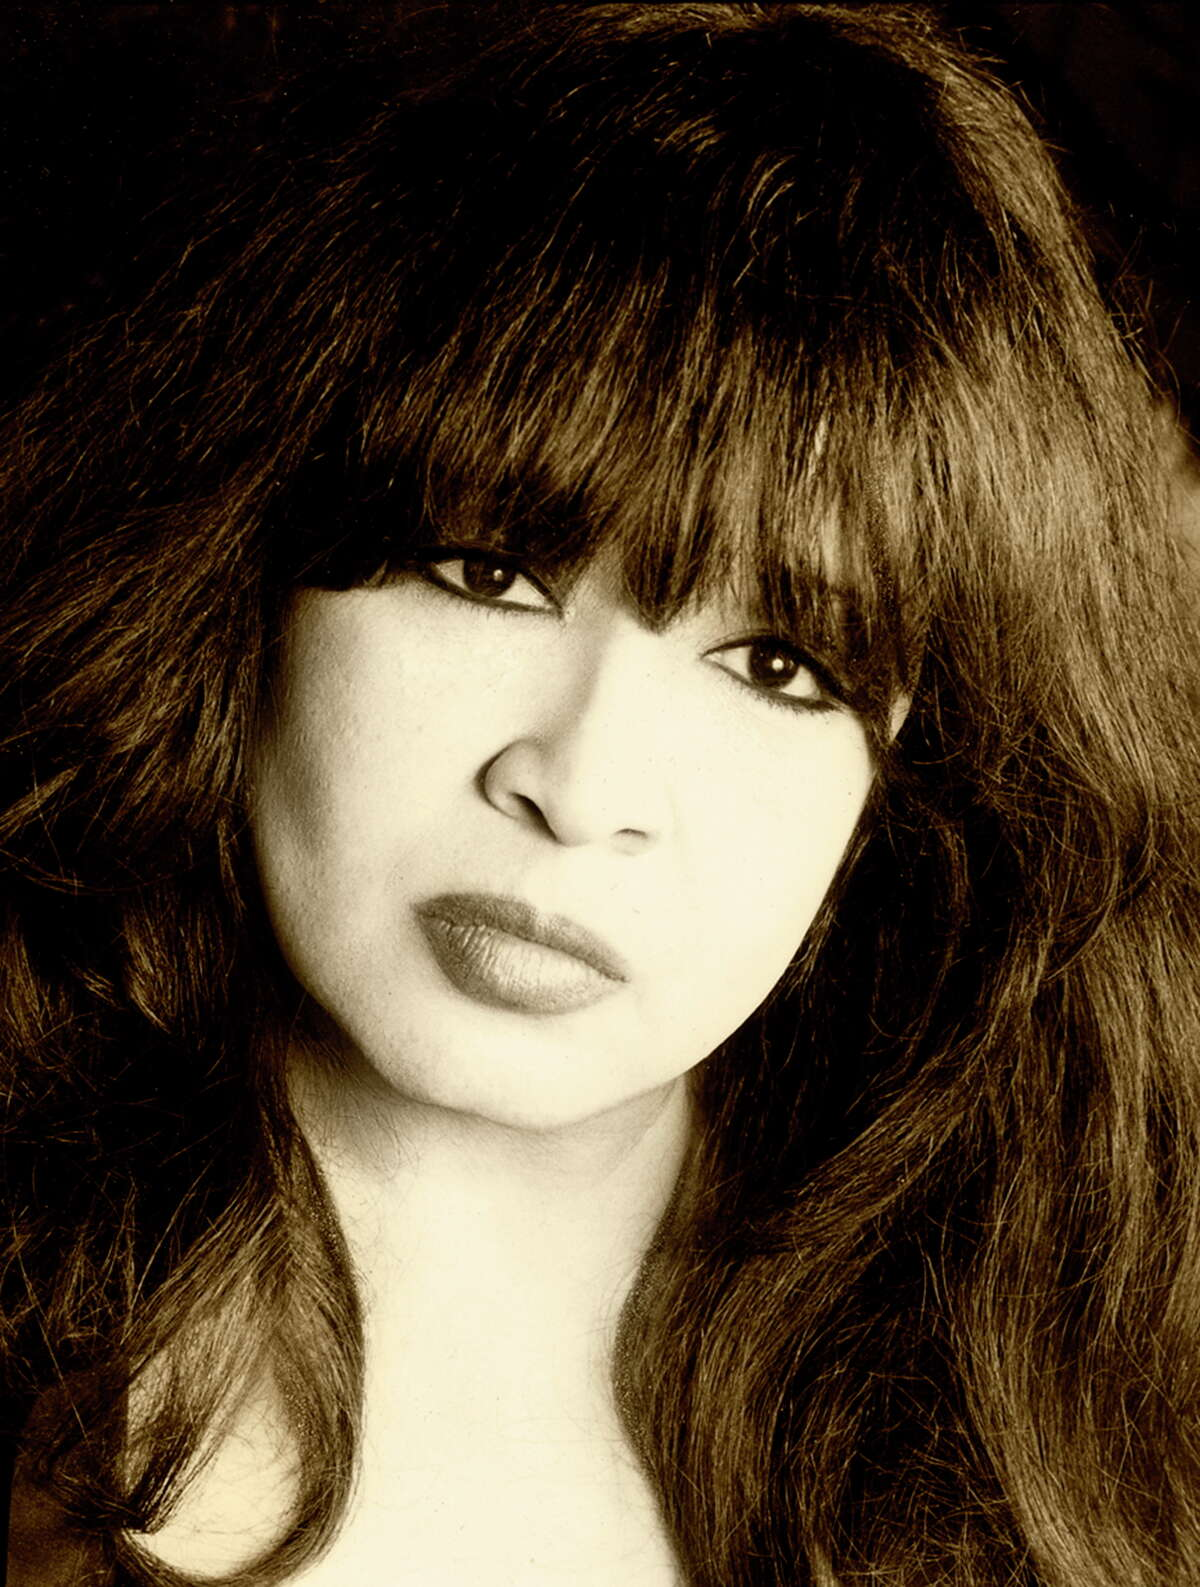 Singer Ronnie Spector today, in a photo provided by